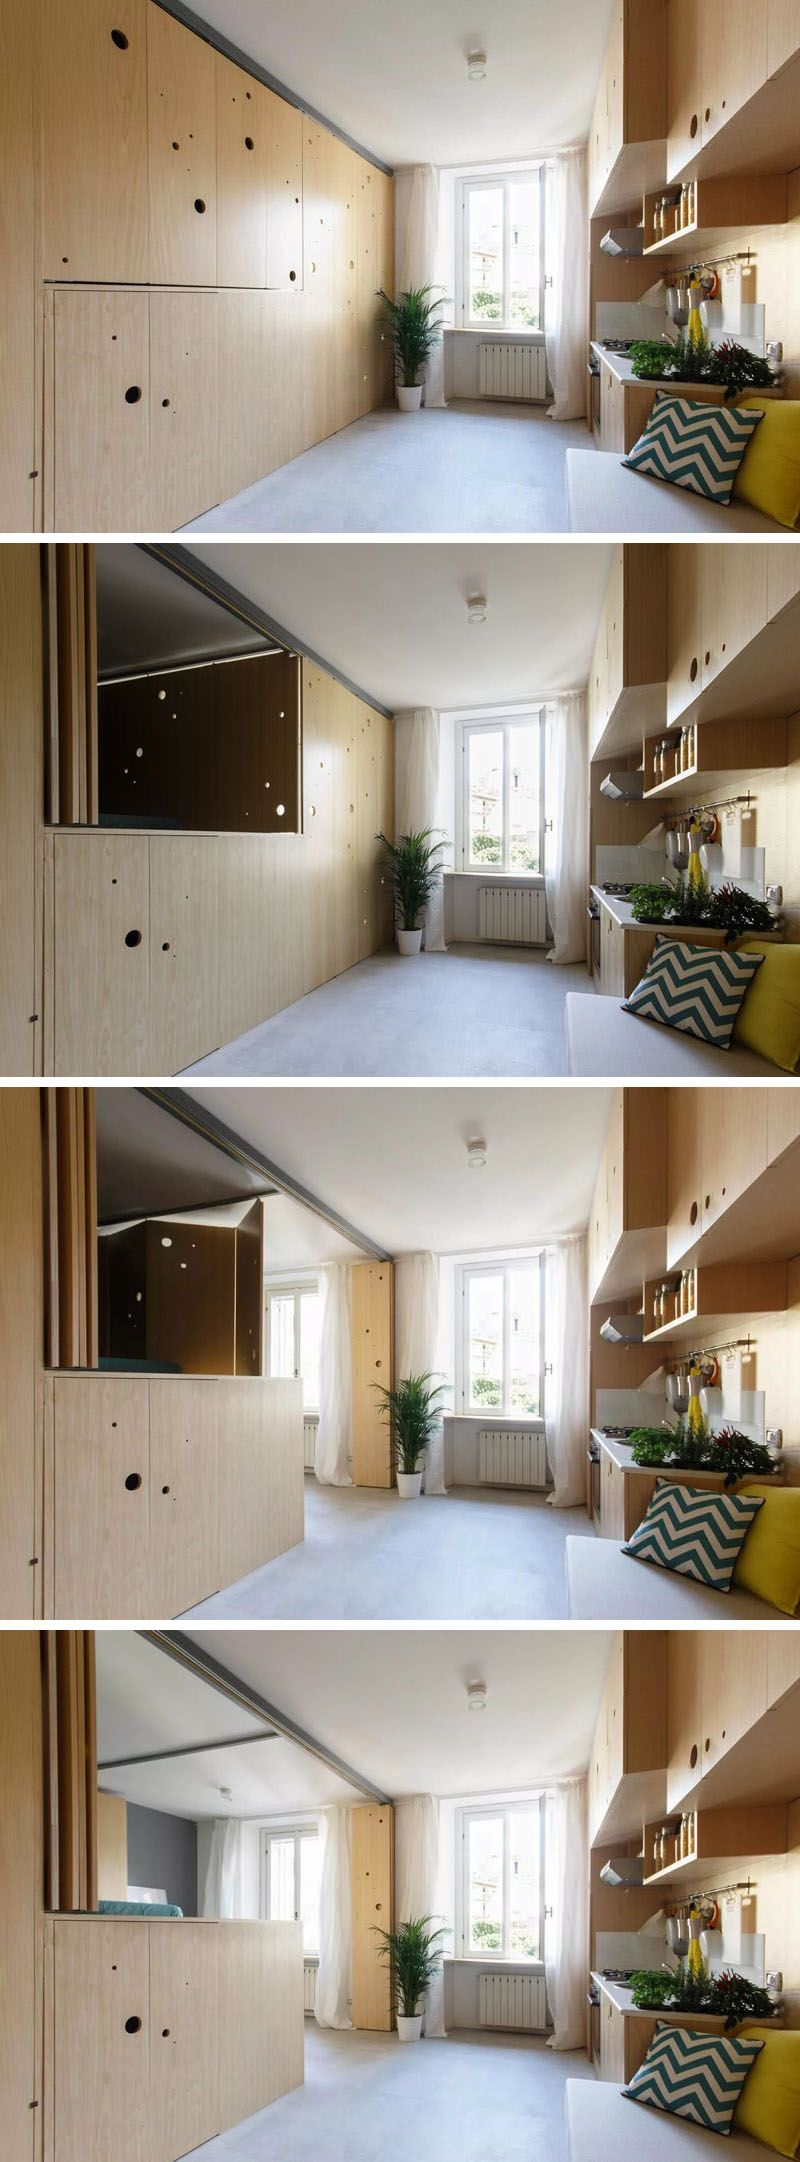 Bed and window placement  this tiny apartment has a wall that opens up to reveal the bedroom